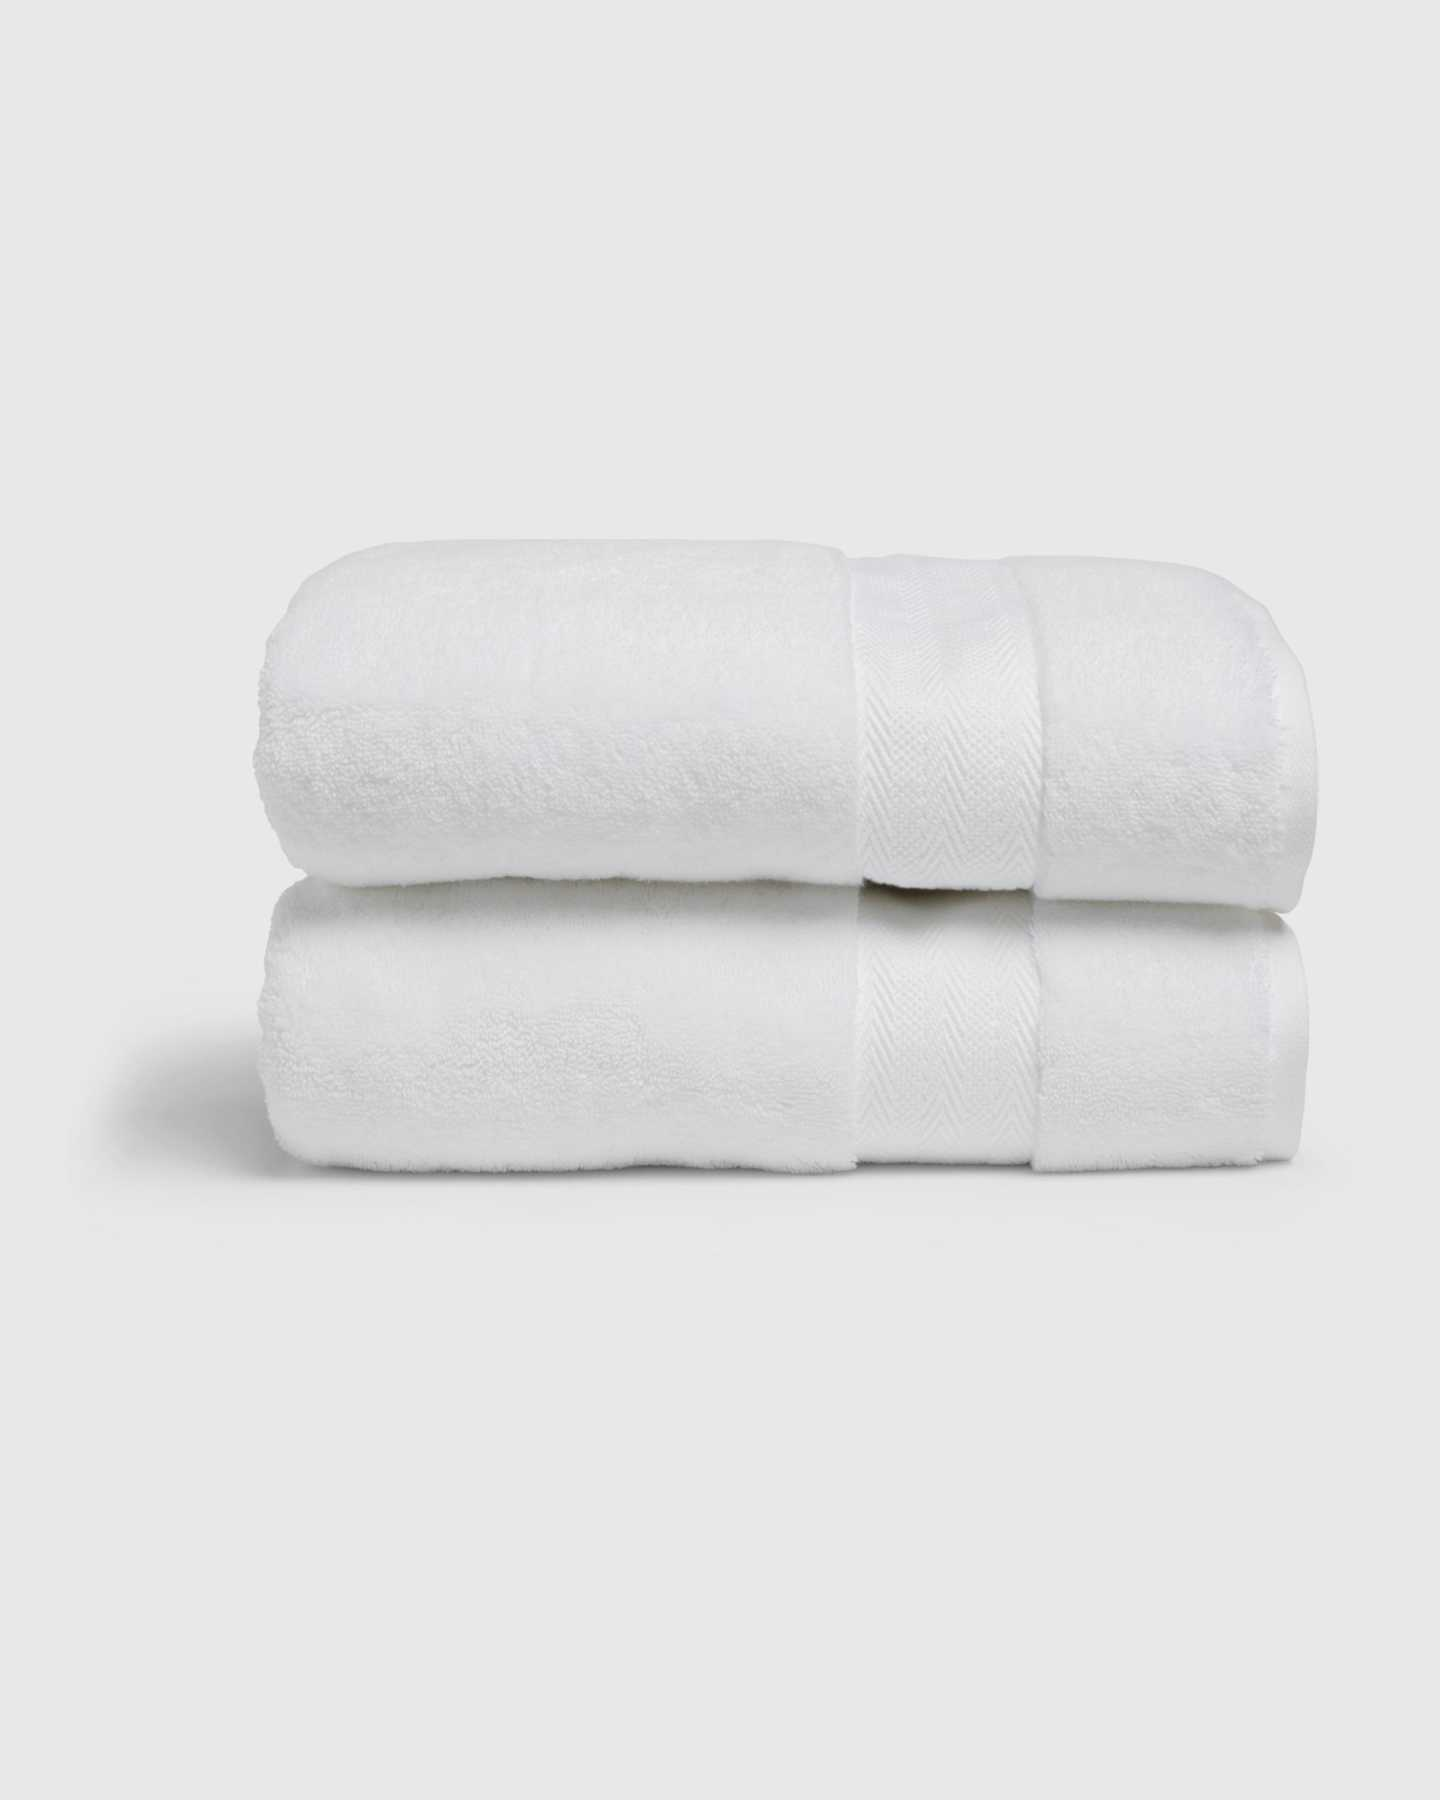 Turkish Spa Bath Sheets (Set of 2) - White